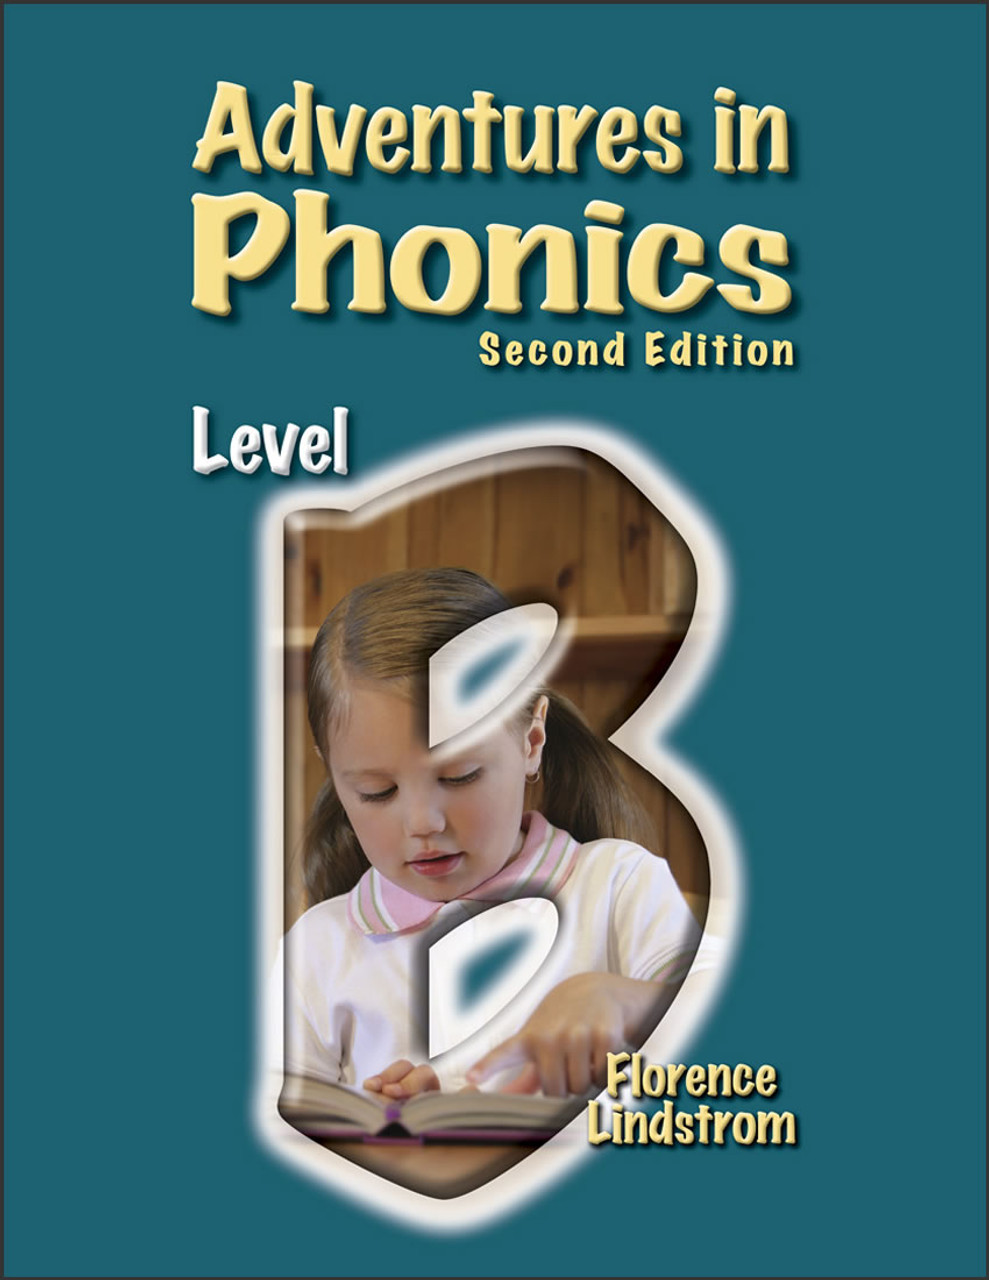 Adventures in Phonics Level B, 2nd edition